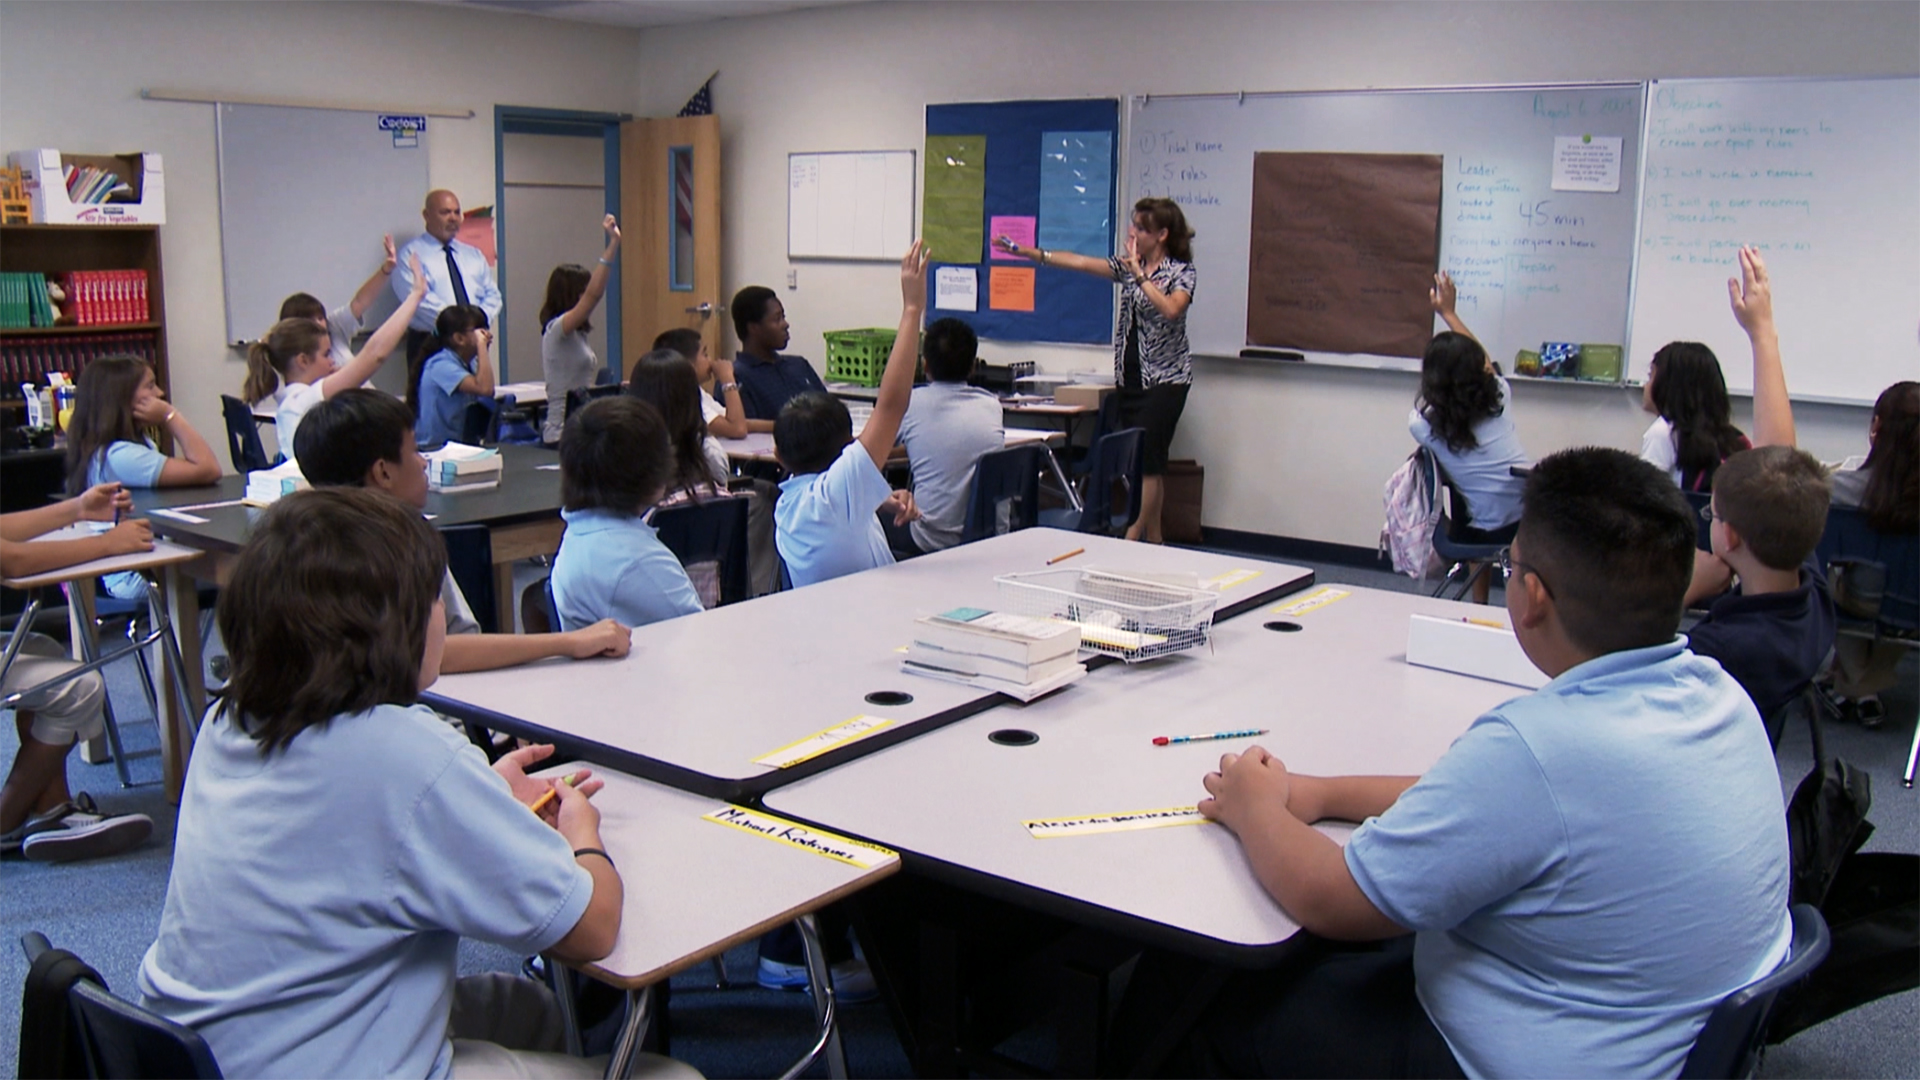 File image of a classroom in Arizona.